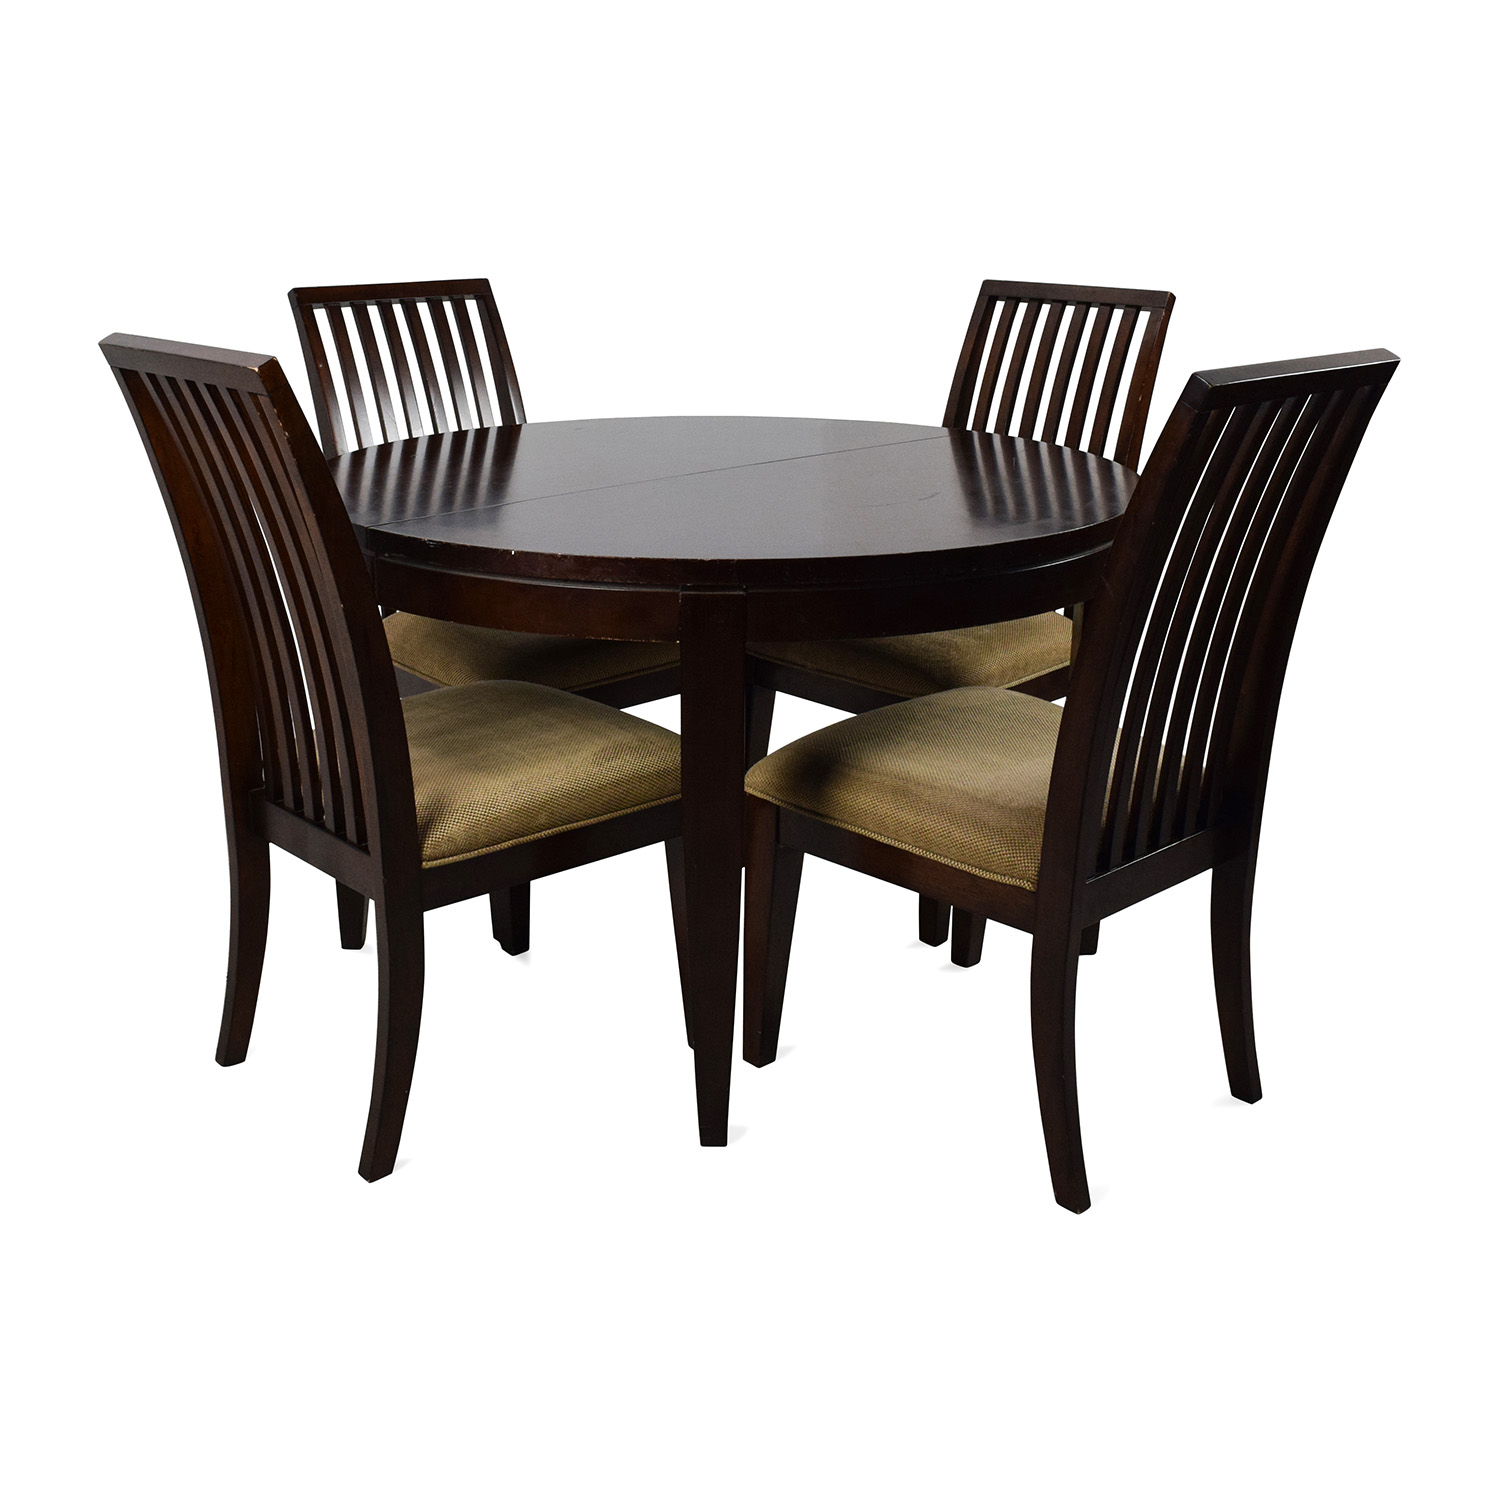 Macys Macys Bradford Extendable Dining Table With 4 Chairs Tables ...